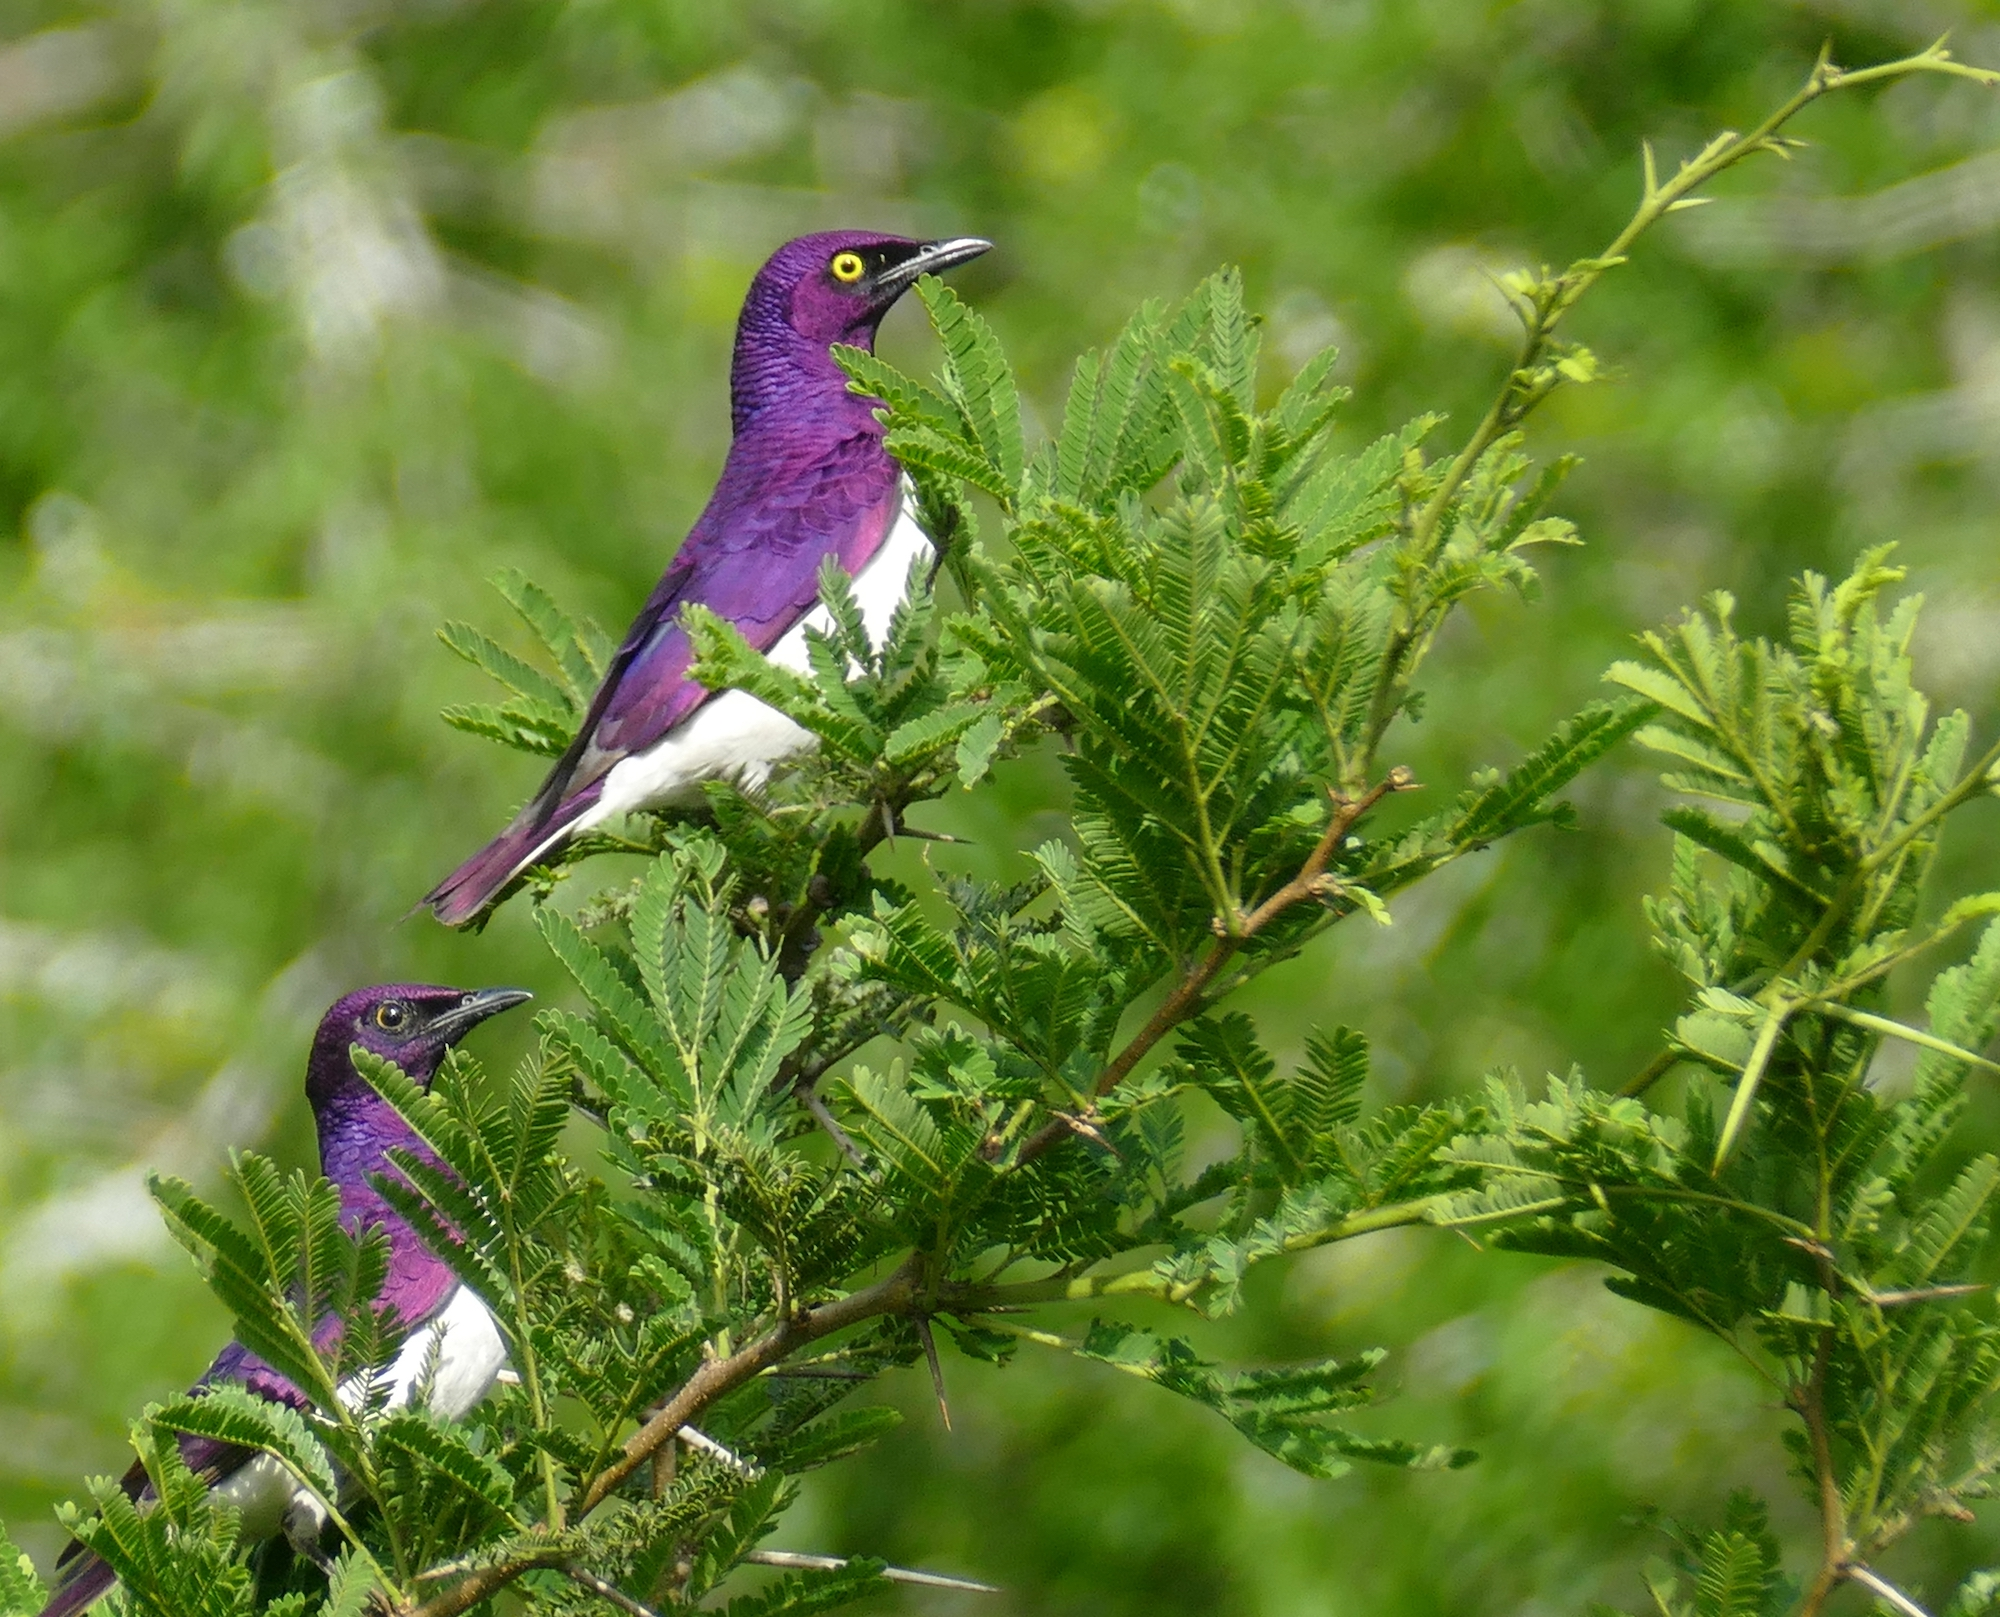 Two purple birds in the branches of a tree